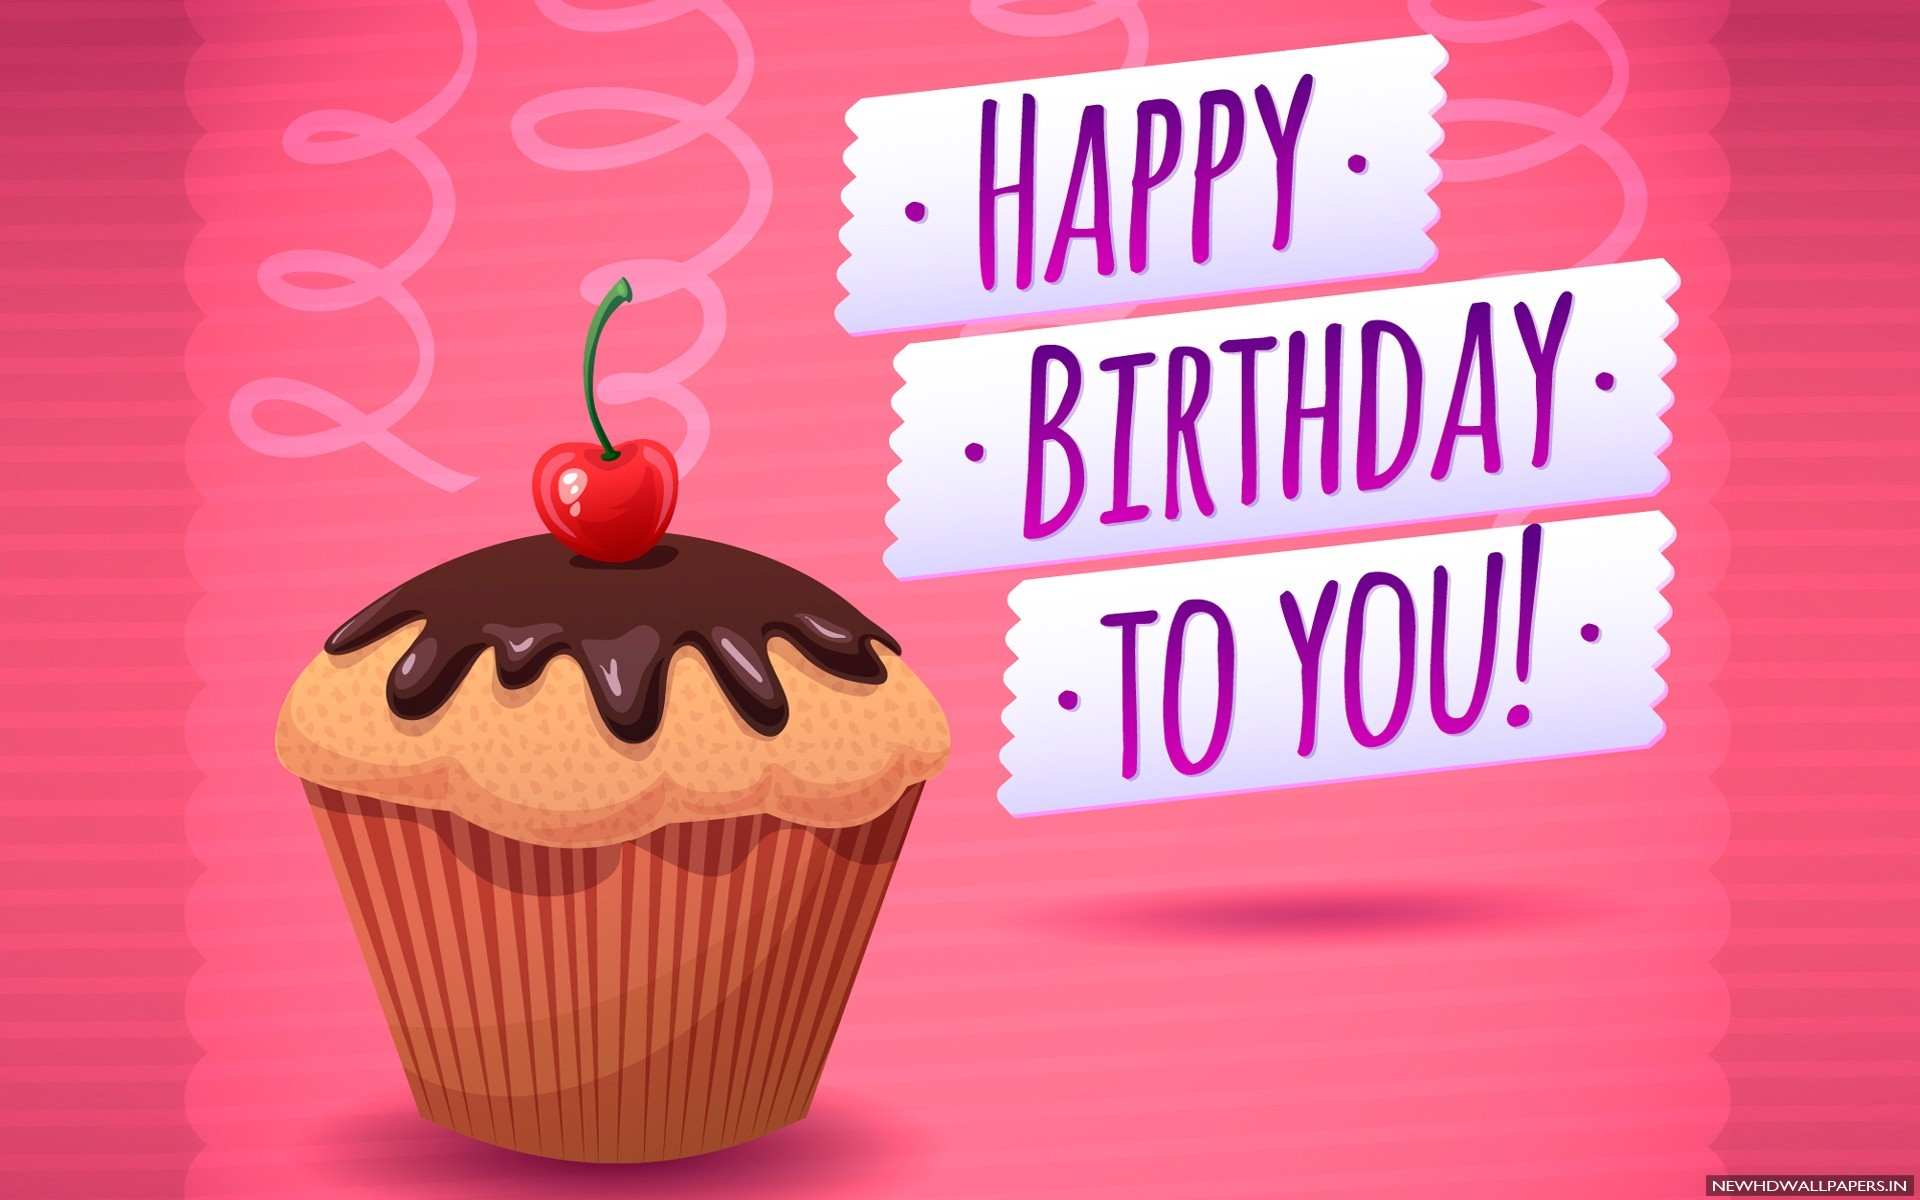 happy birthday images hd 1080p ; Happy-Birthday-Greetings-With-Cake